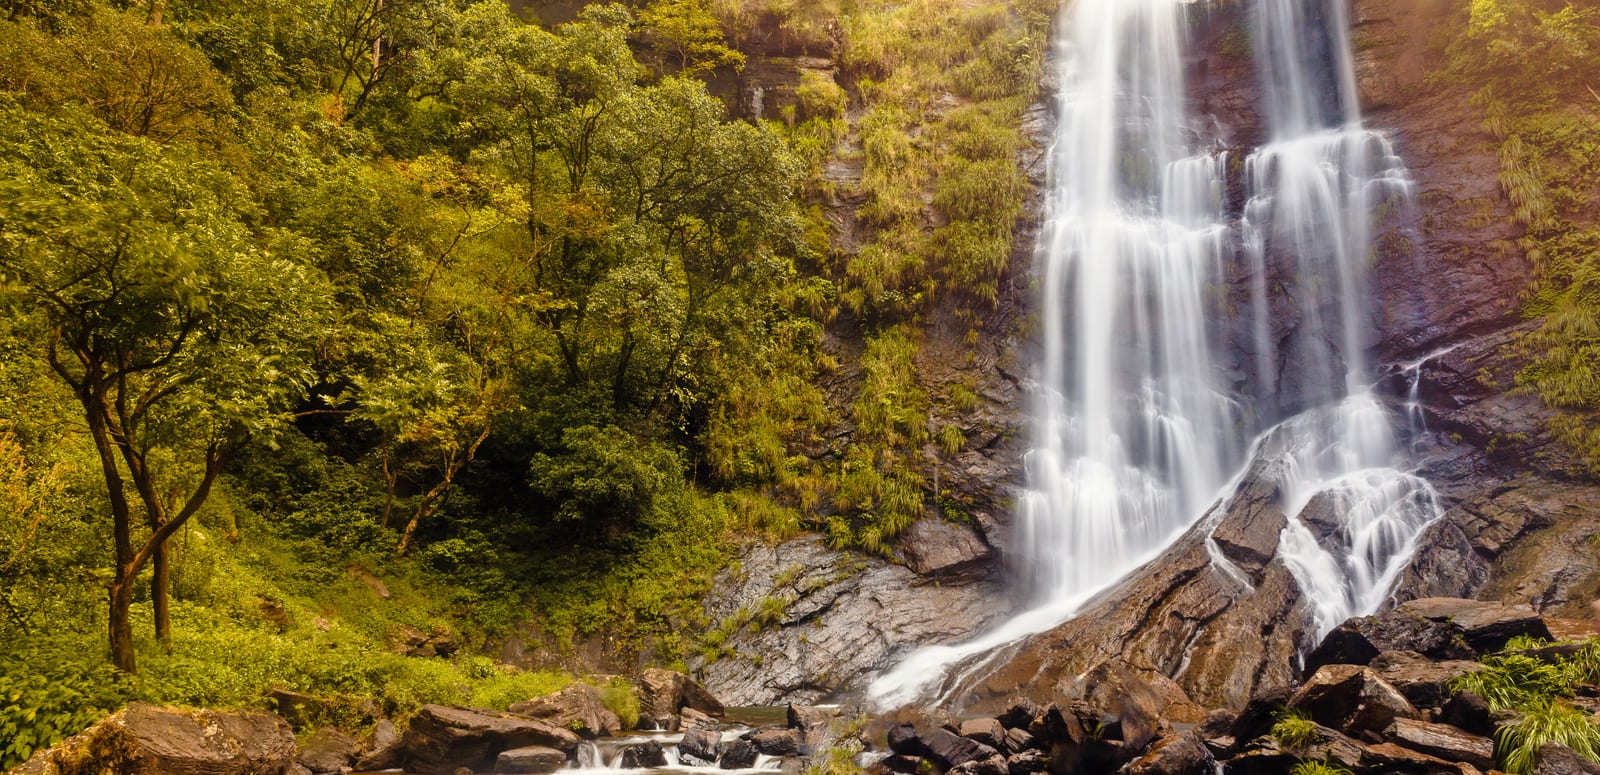 25 Best Places to Visit in Chikmagalur - 2019 (Photos & Reviews)